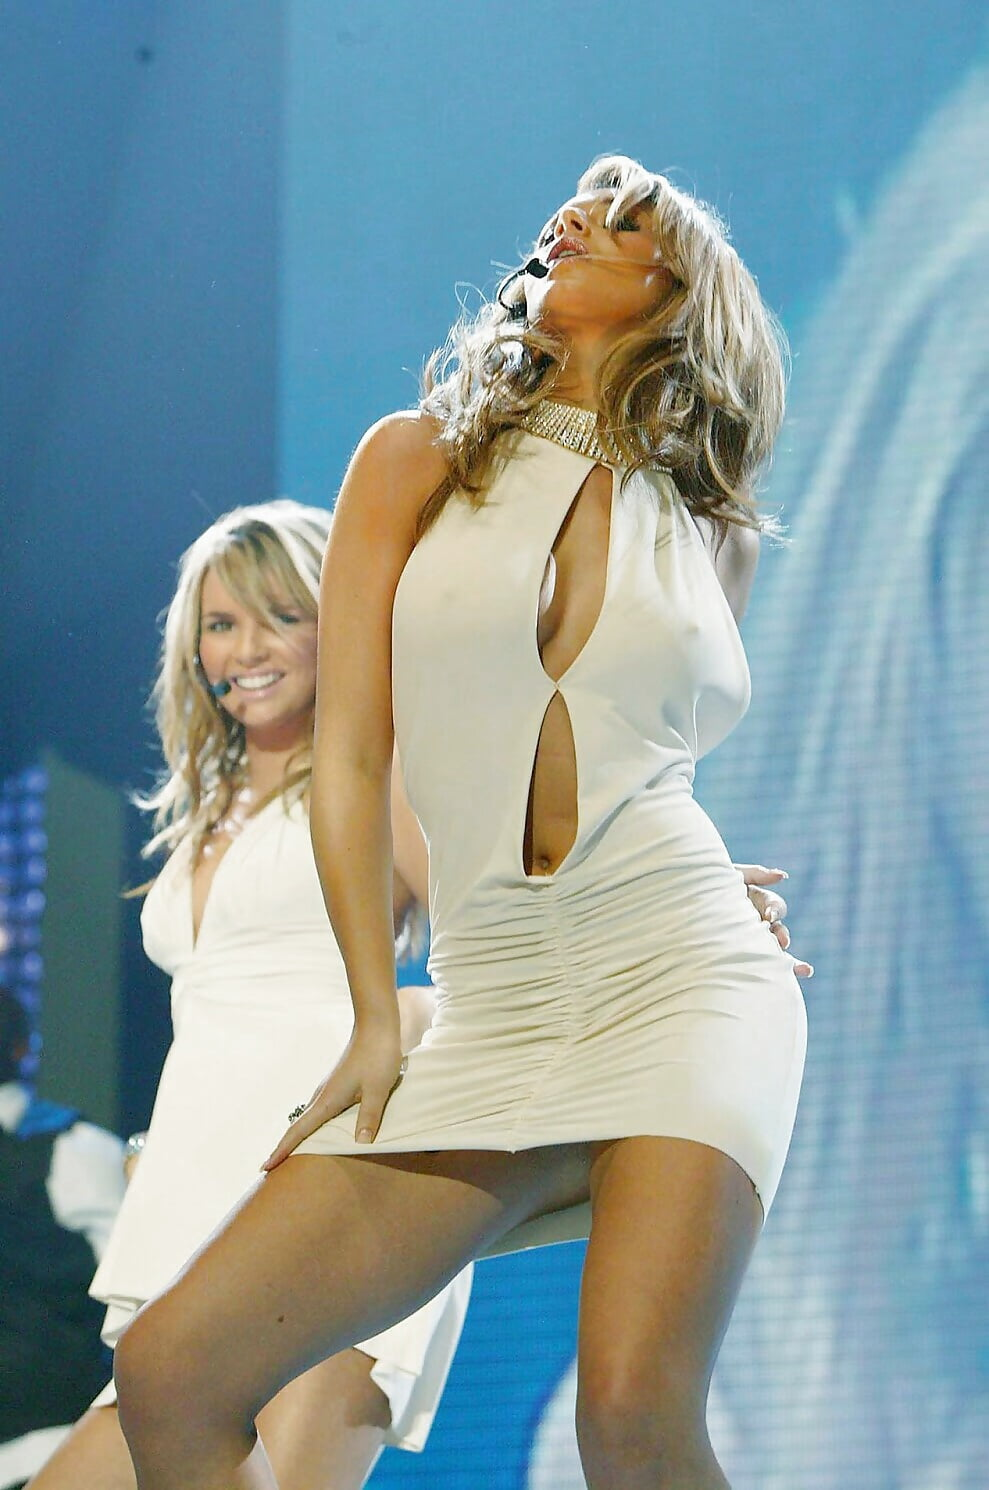 Cheryl coles mum no panty upskirt nude celebrity pictures